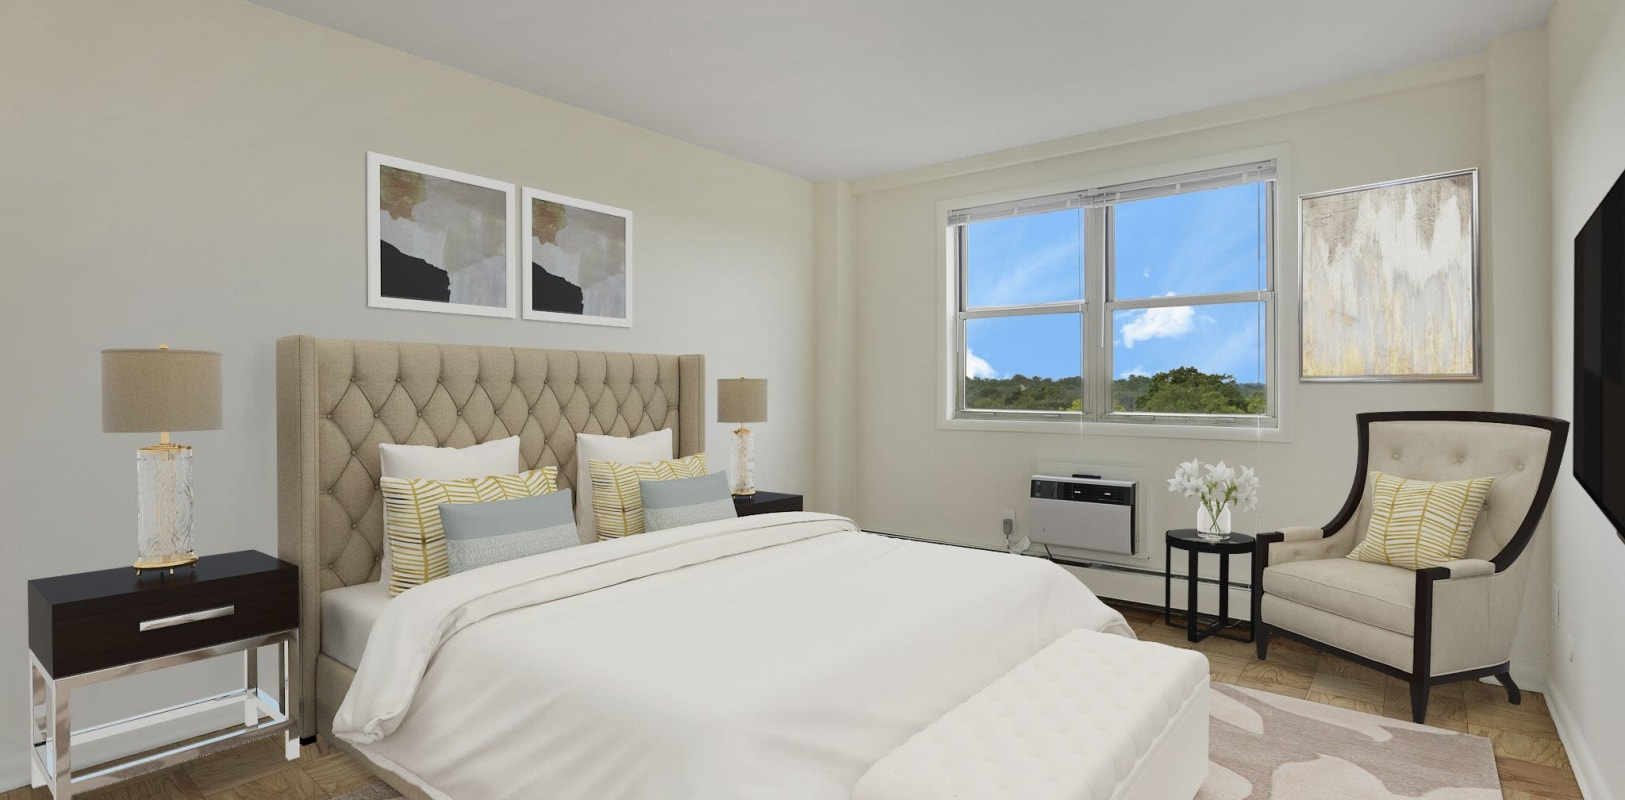 Bedroom with a view at 10 Landing Lane in New Brunswick, New Jersey